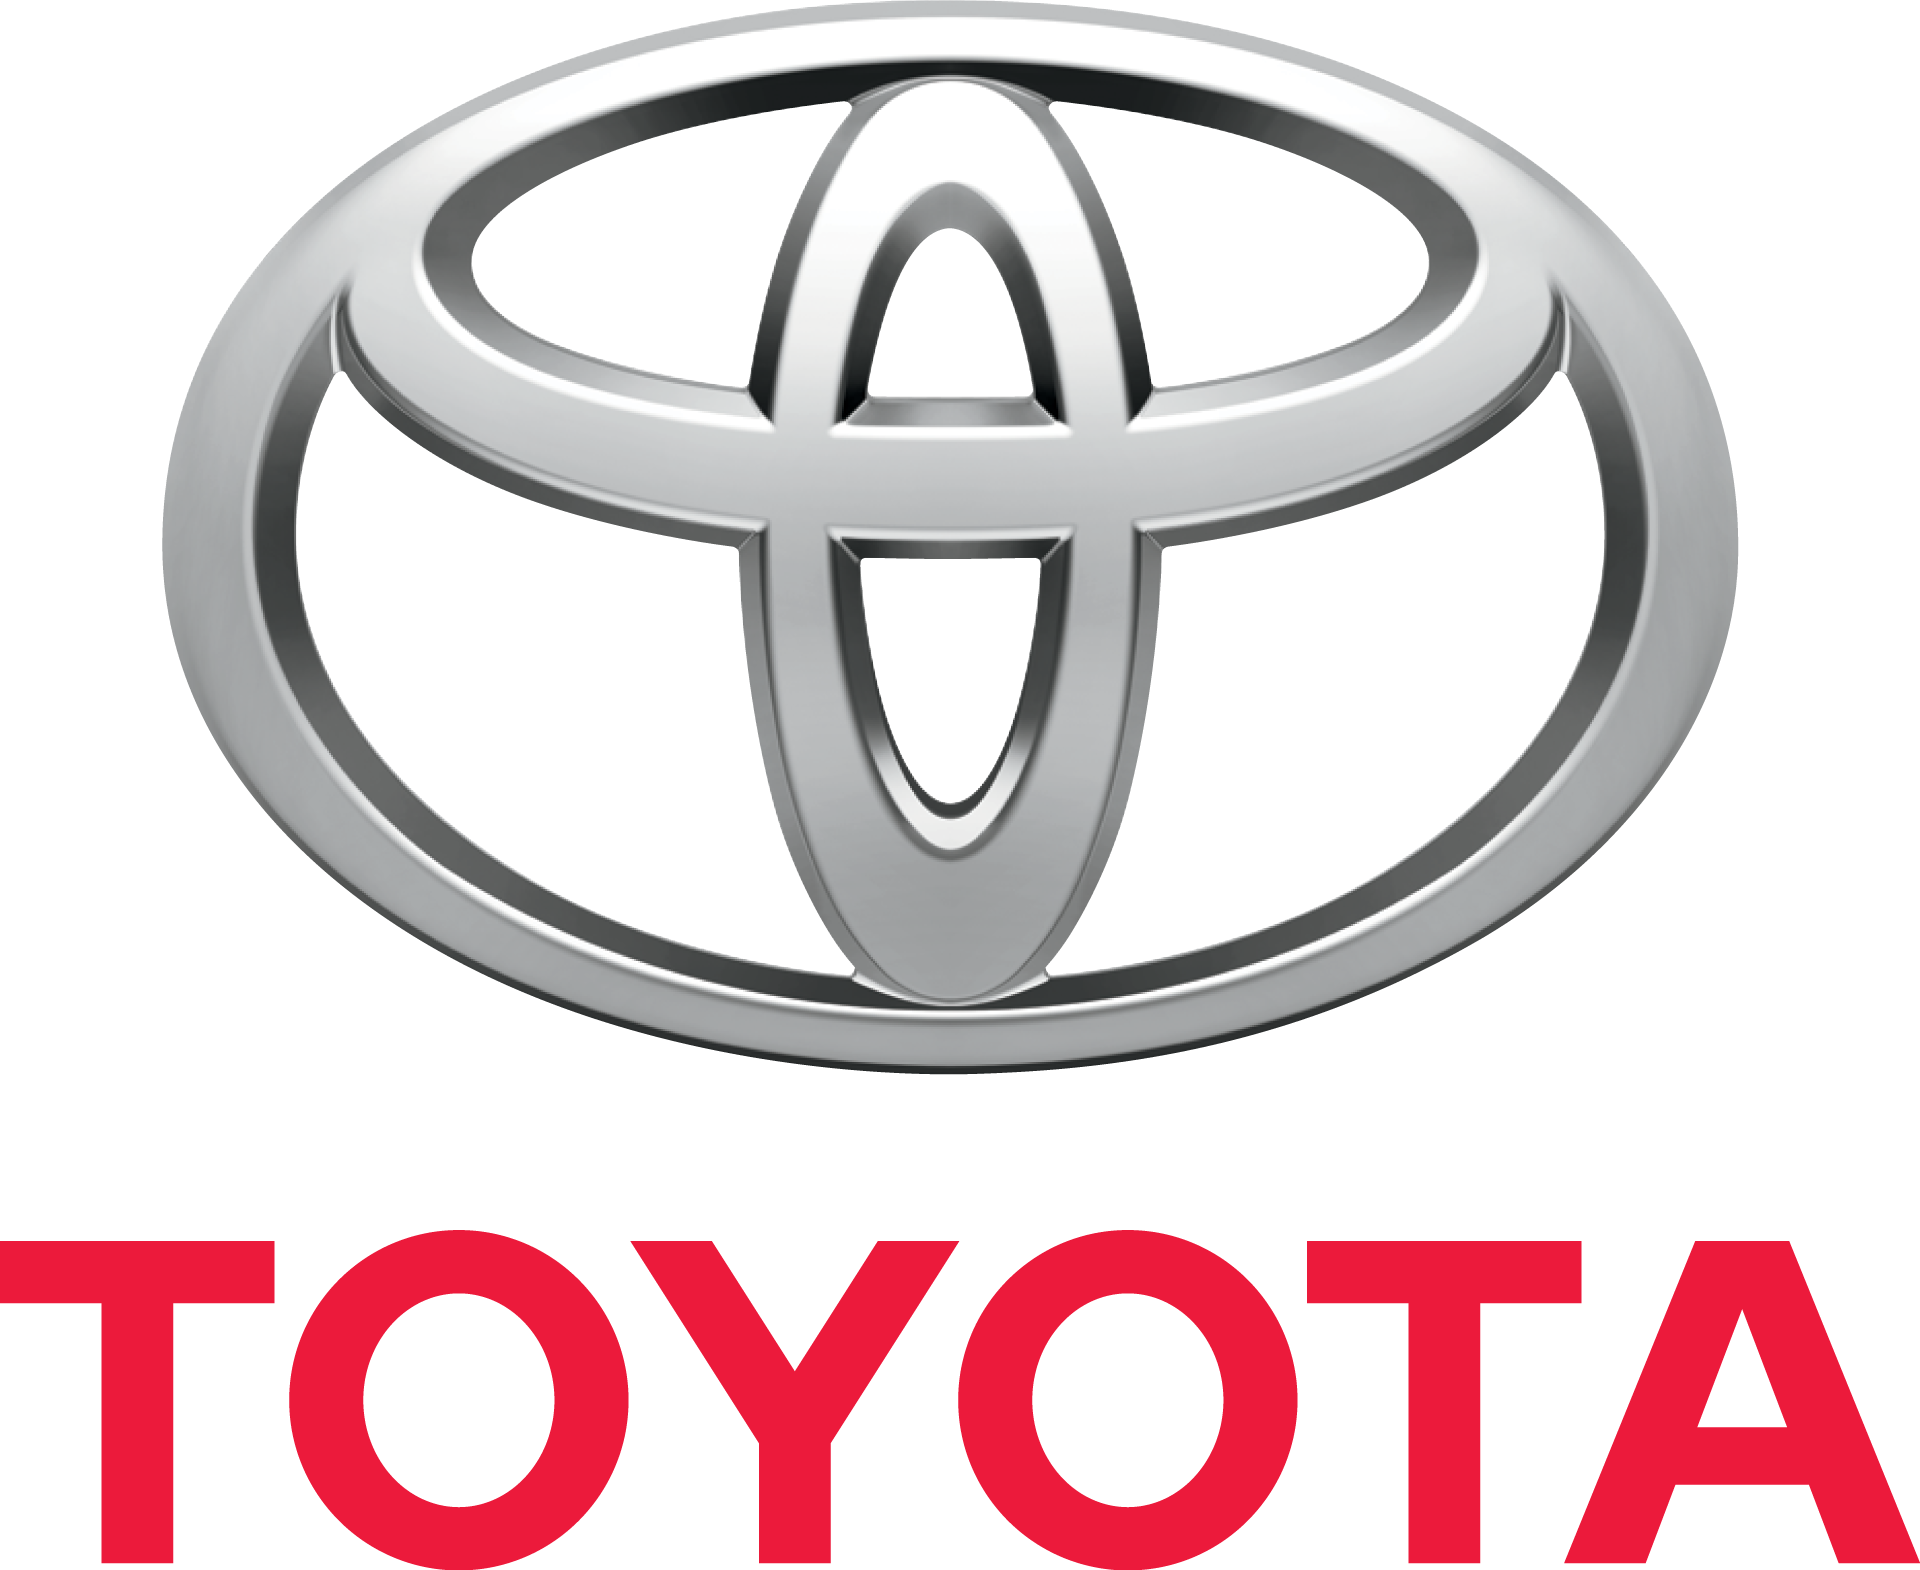 Toyota Logo Hd Full Hd Pictures